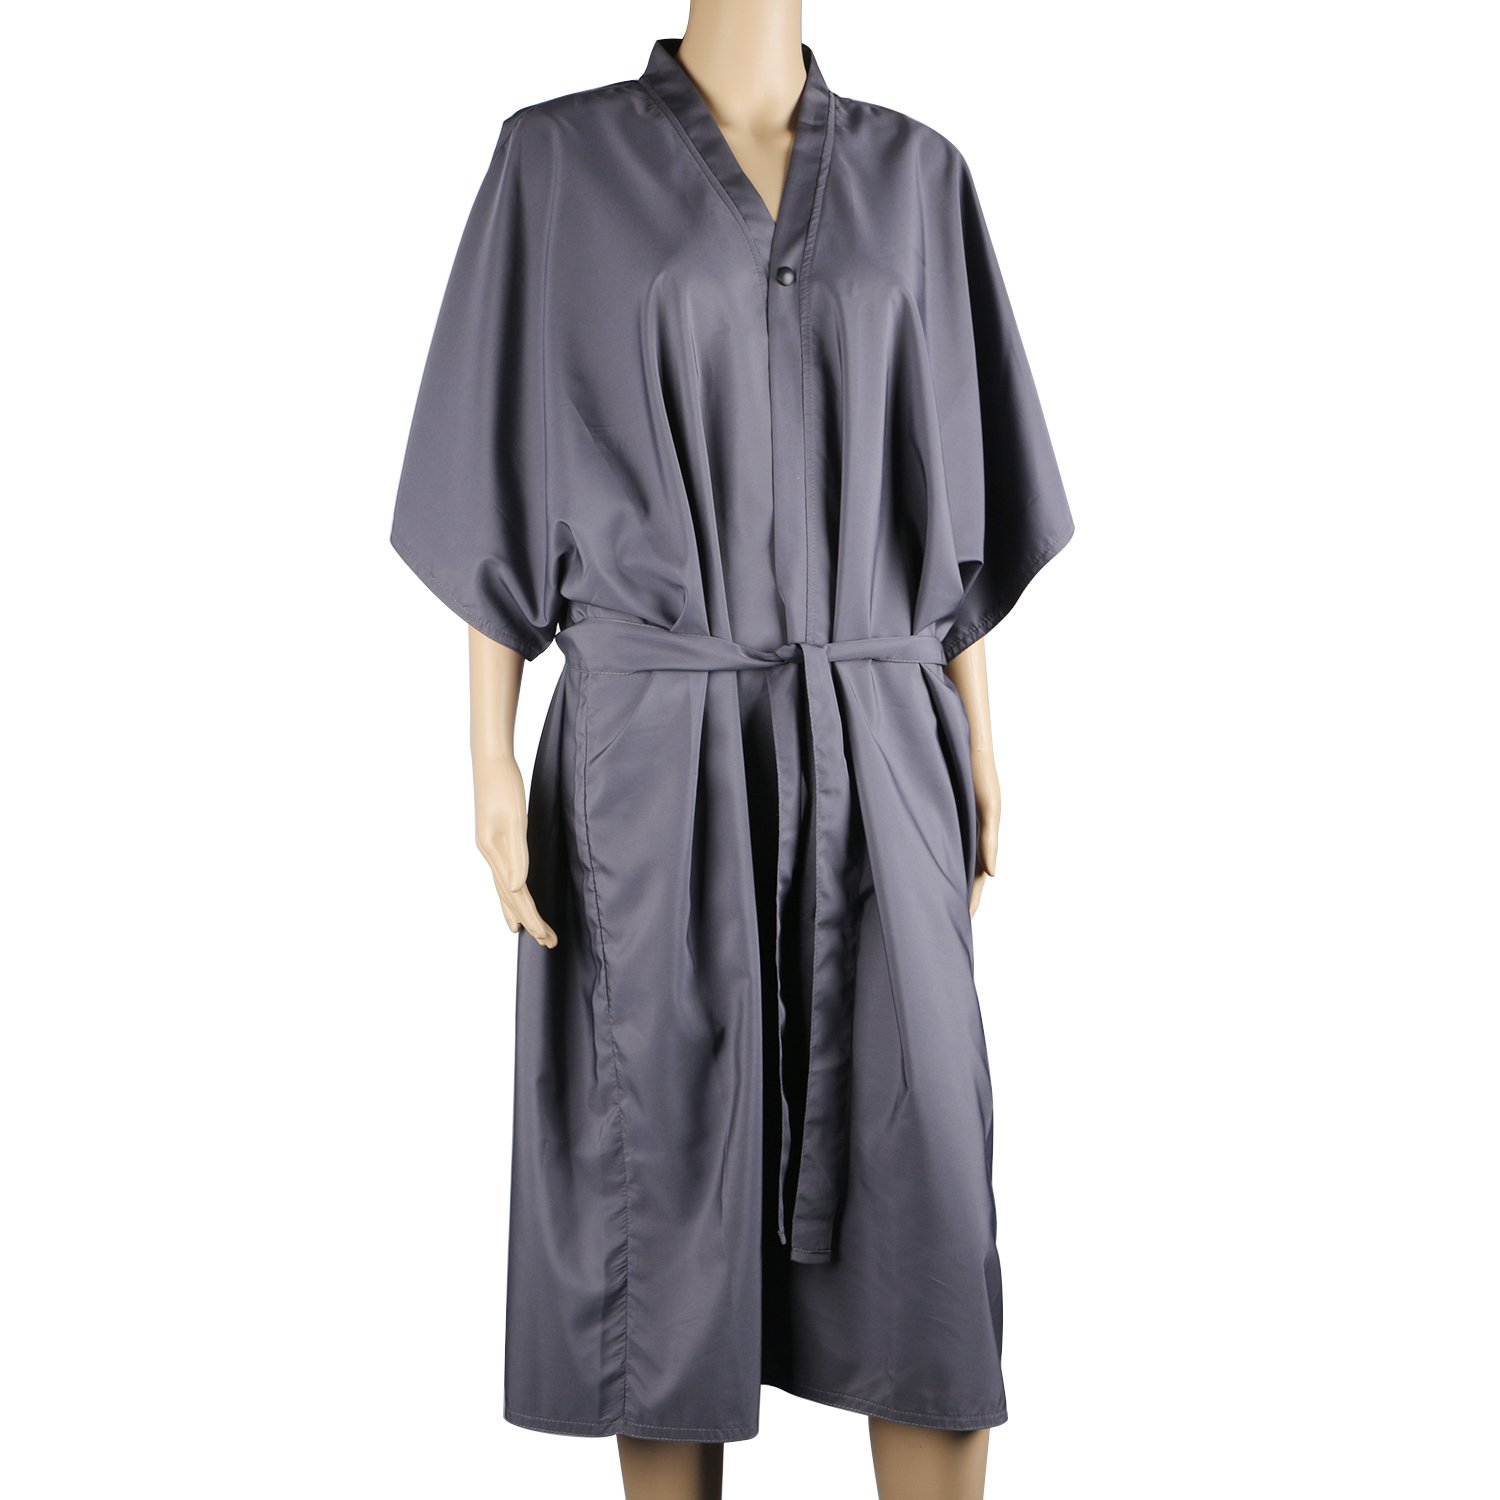 Segbeauty Spa Massage Robe for Beauty Salon, Kimono Robe for Women, Black Smock Cape Dress on Hair Dye Shampoo Makeup, Client Apparel Uniform or Lab Gown